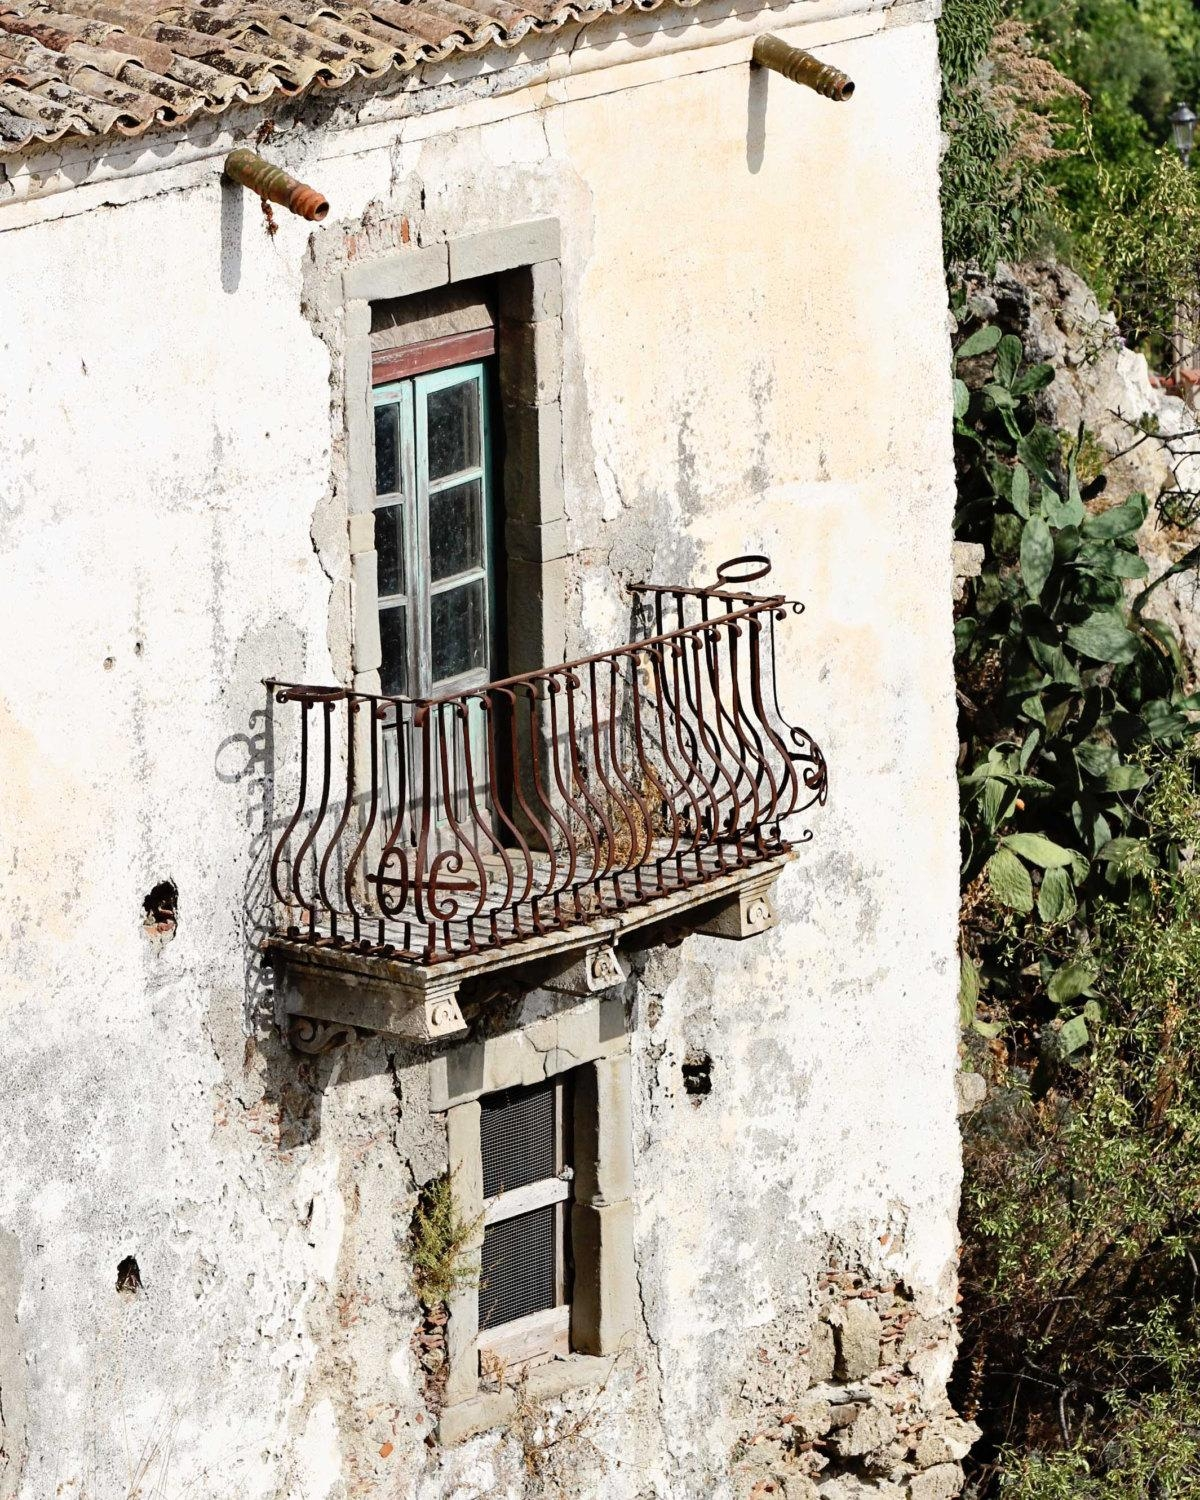 Sicily Italy Photography – Balcony Print – Rustic Italian Decor Inside Rustic Italian Wall Art (View 8 of 20)